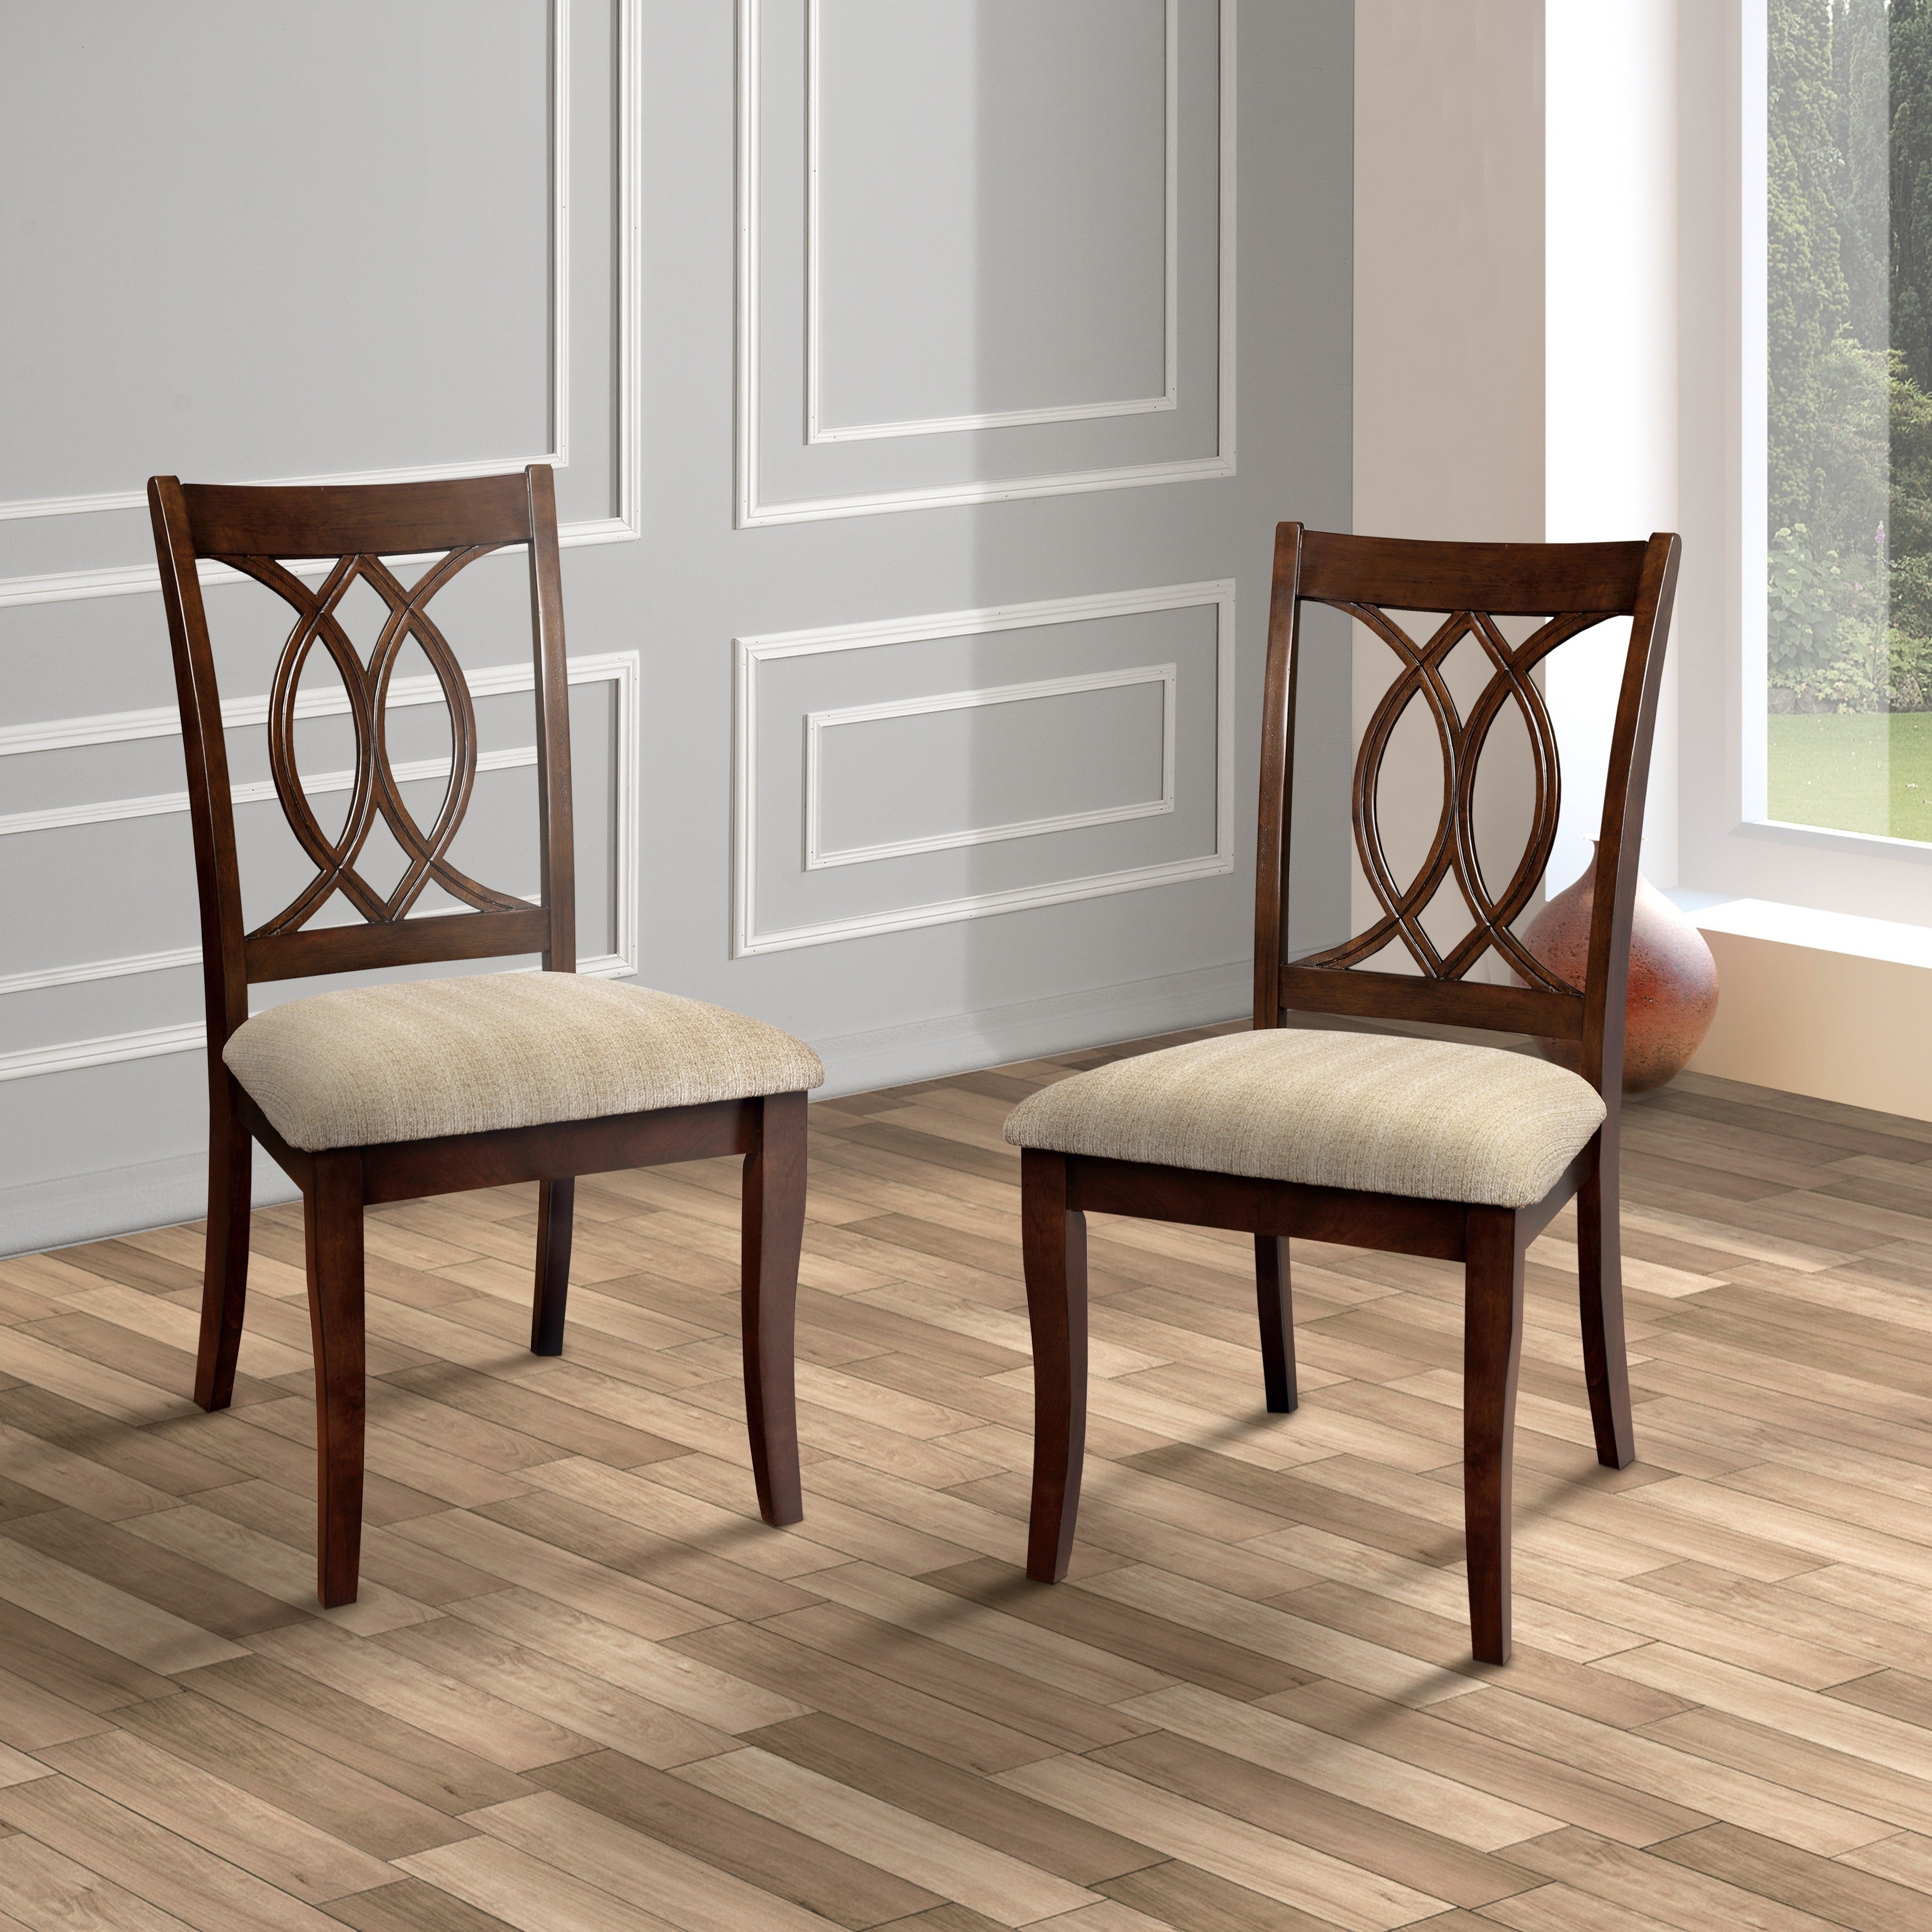 8a2930adb8ef Buy Rustic Kitchen   Dining Room Chairs Online at Overstock